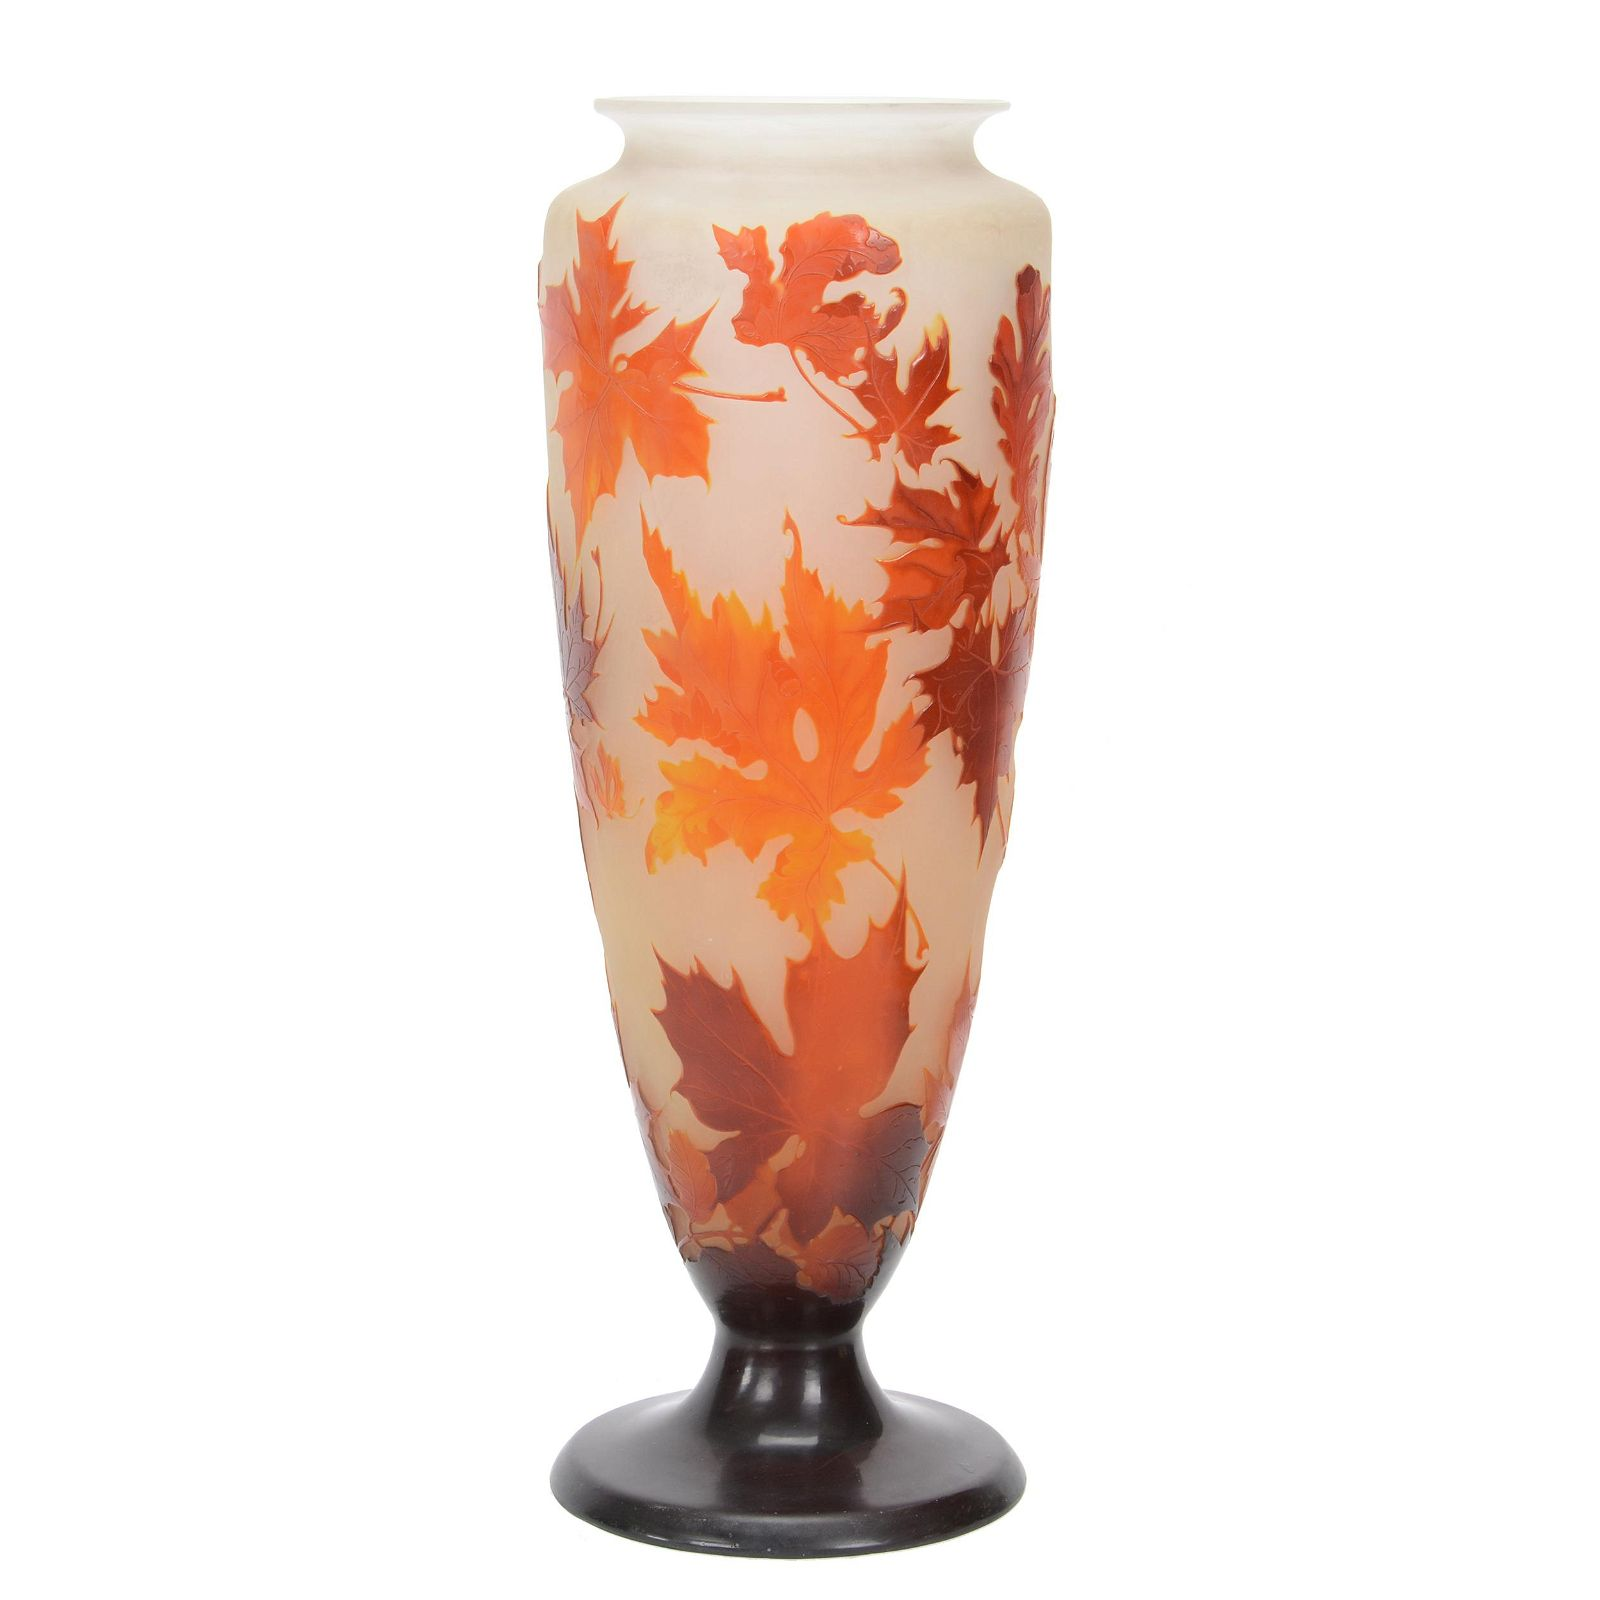 Pedestal Vase, French Cameo Art Glass Signed Galle